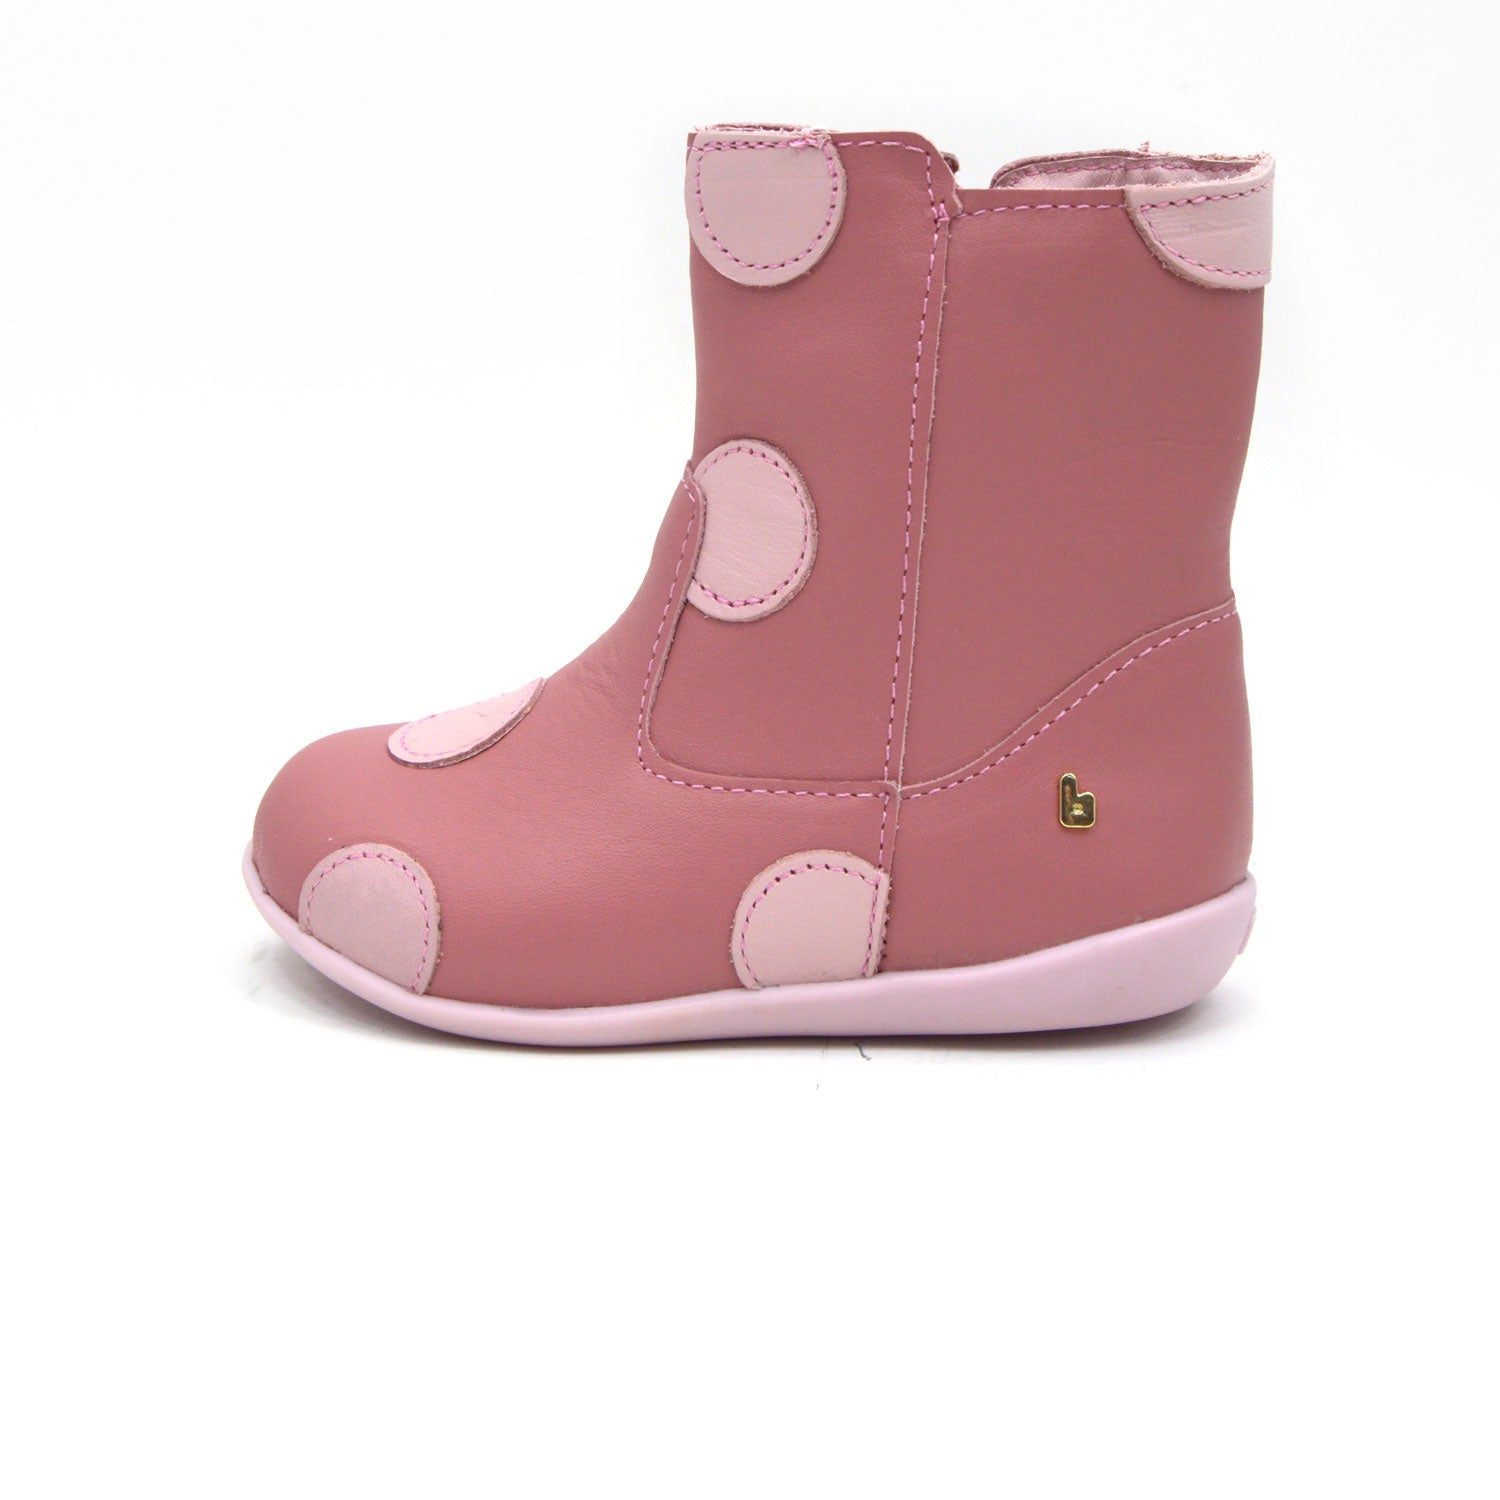 0447089fc877f Baby & Toddler Shoes • Baby Bootique Clothing Online in Australia